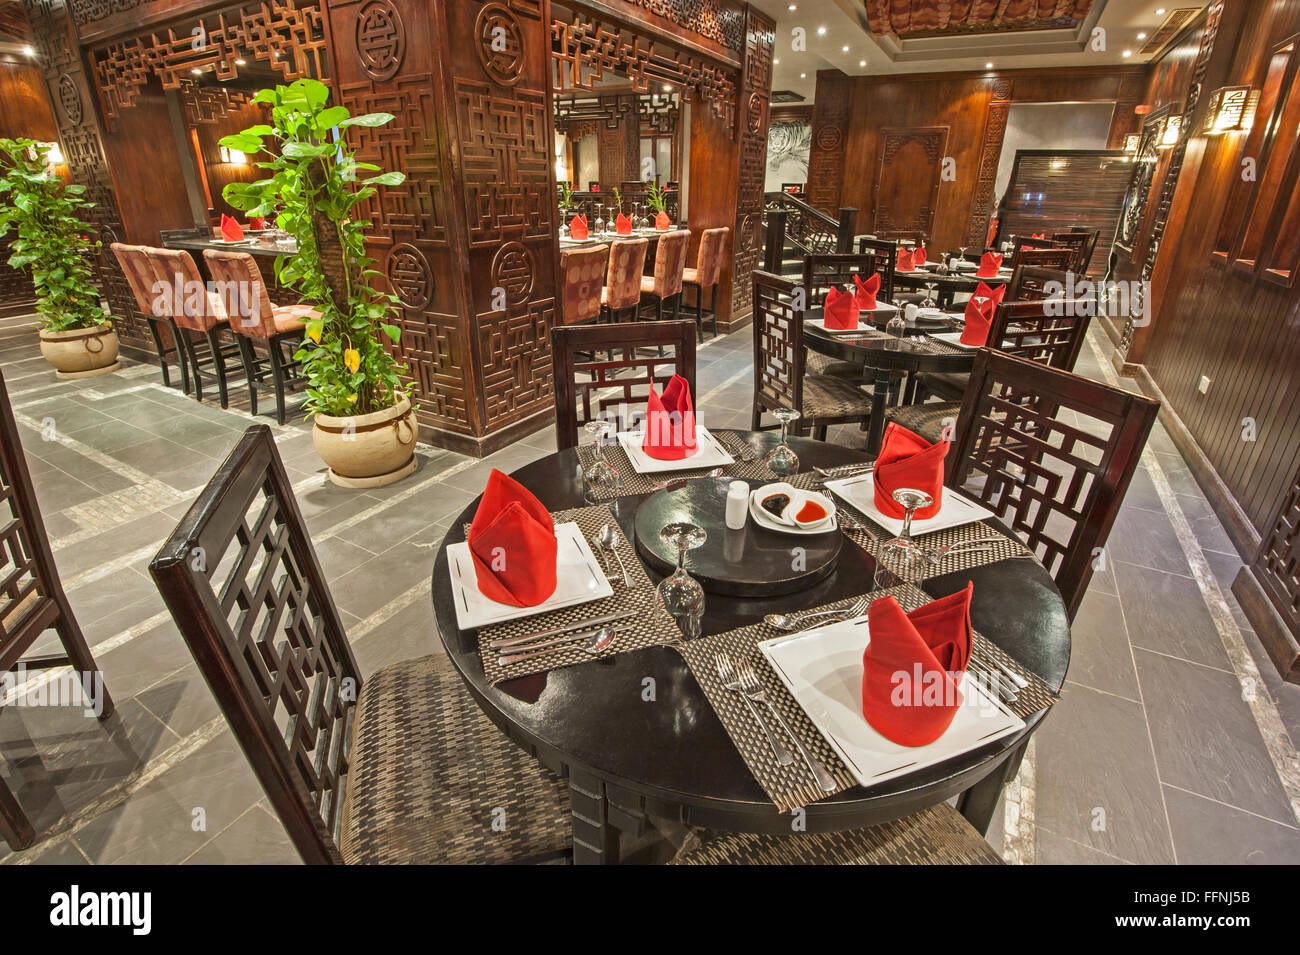 Interior Design Of A Luxury Hotel Asian Restaurant Dining Area With Stock Photo Alamy,Design Your Own Koozies No Minimum